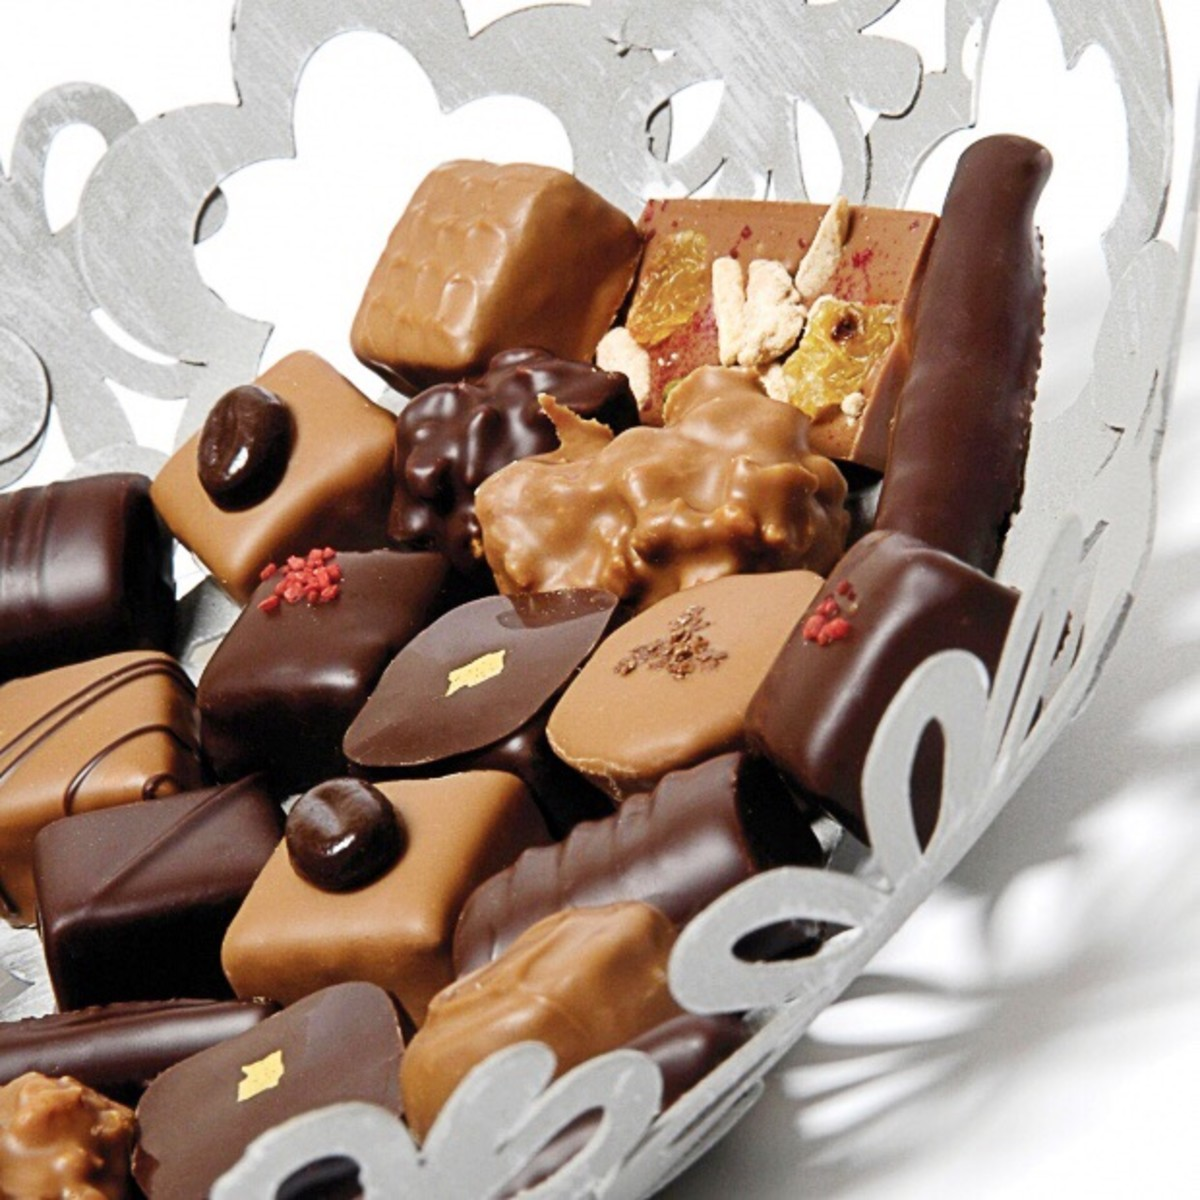 This looks like a lovely collection of chocolates, but it shouldn't be left unattended when there are dogs in the home.